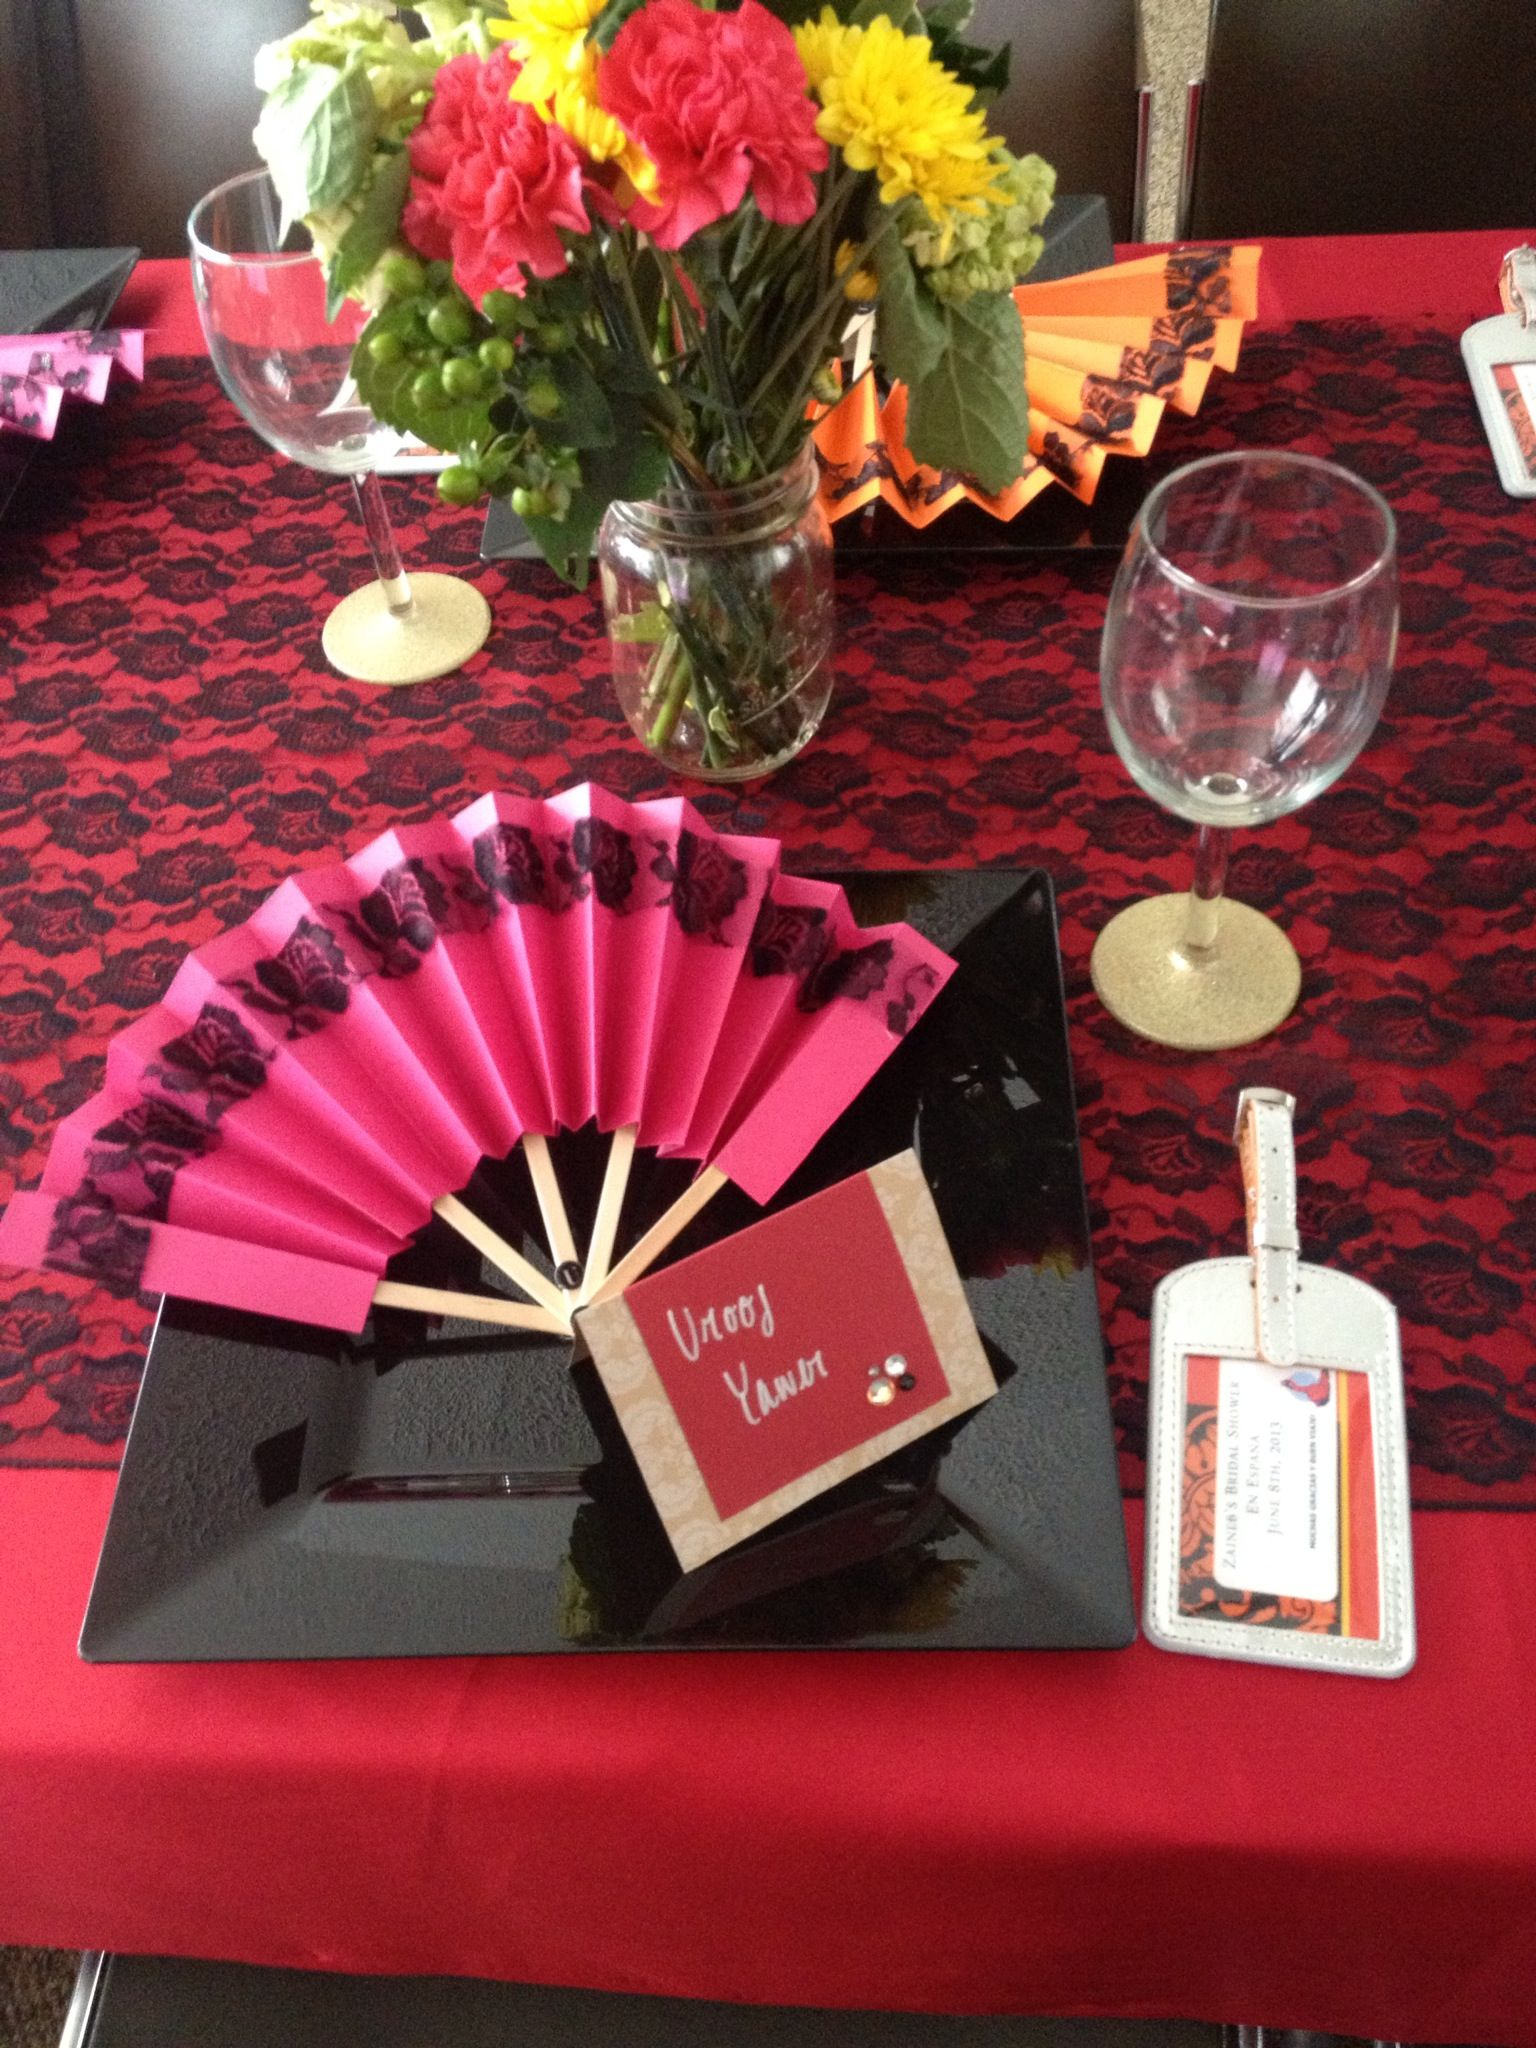 spanish bridal shower place setting spanish party decorations spanish themed party paella party